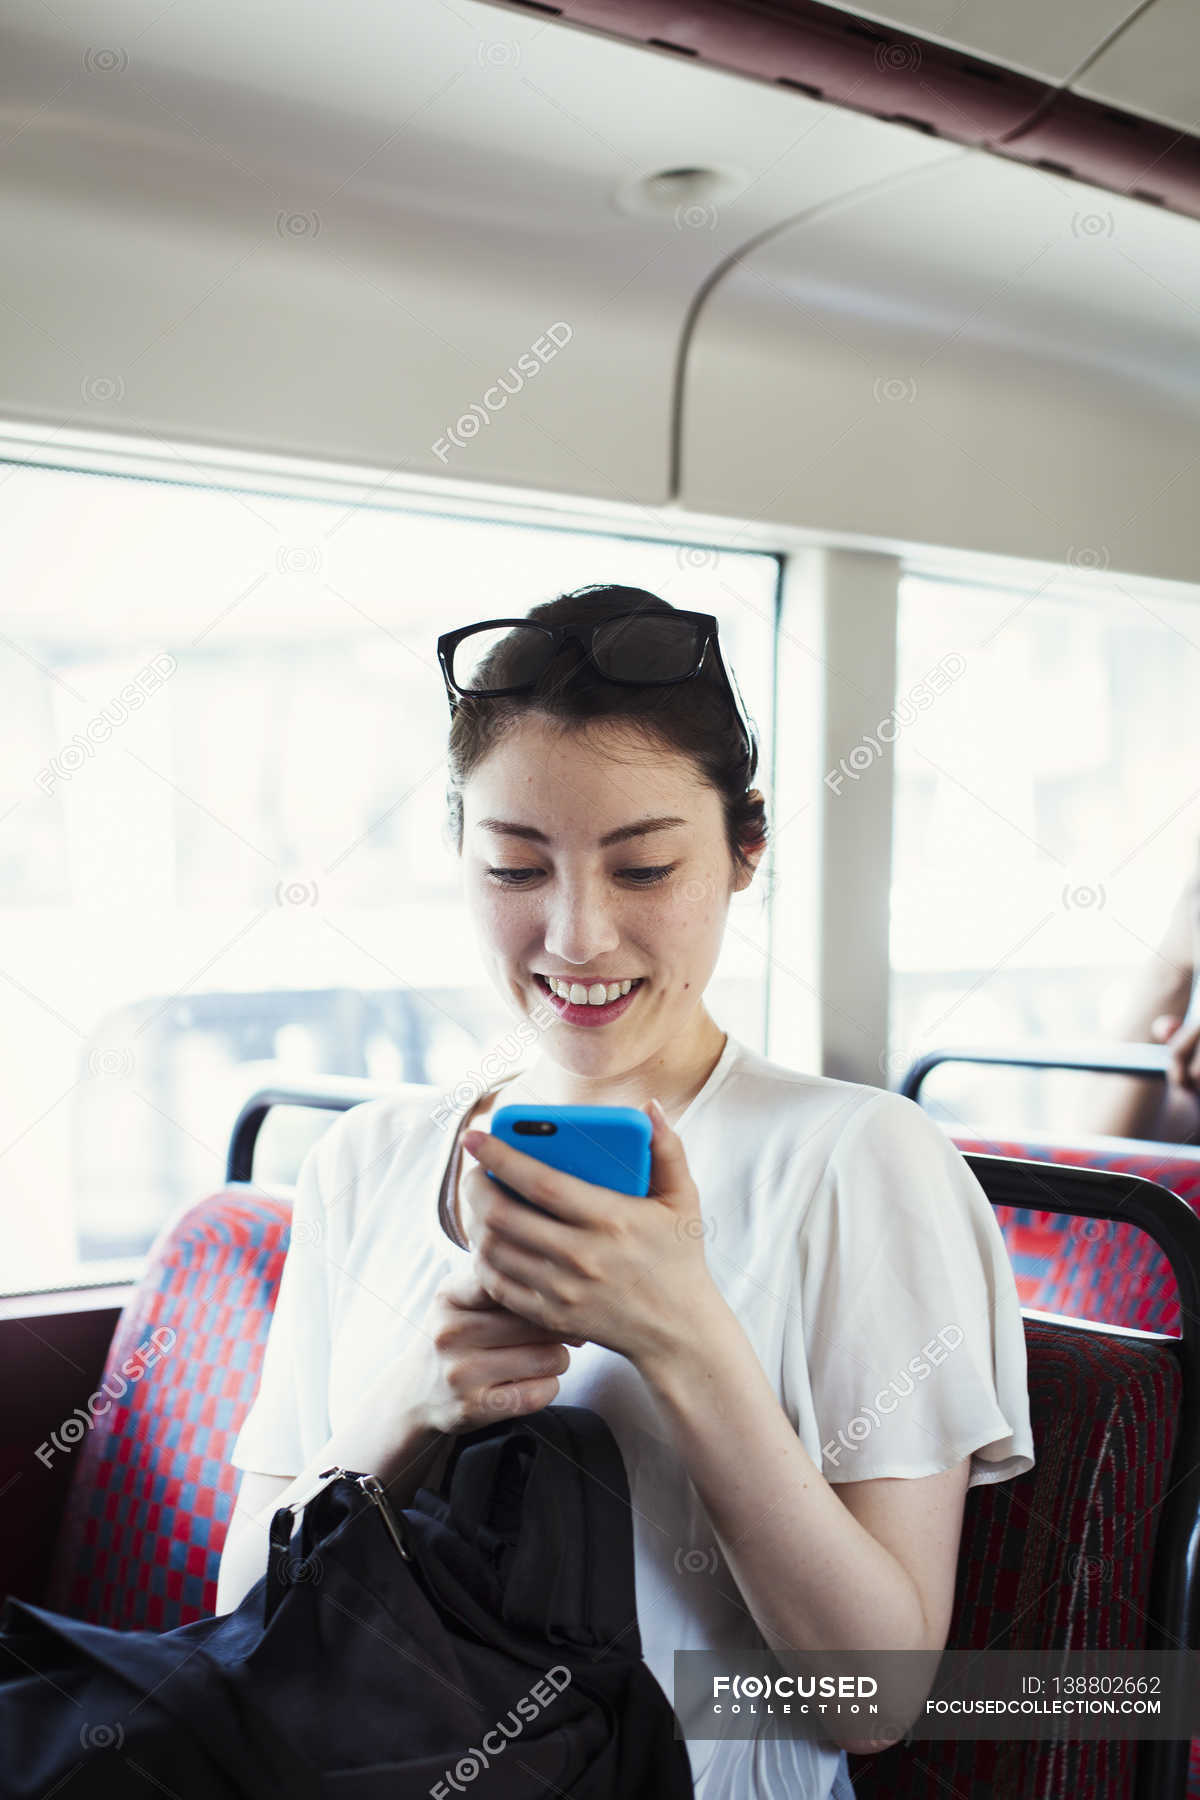 Japanese women on the bus